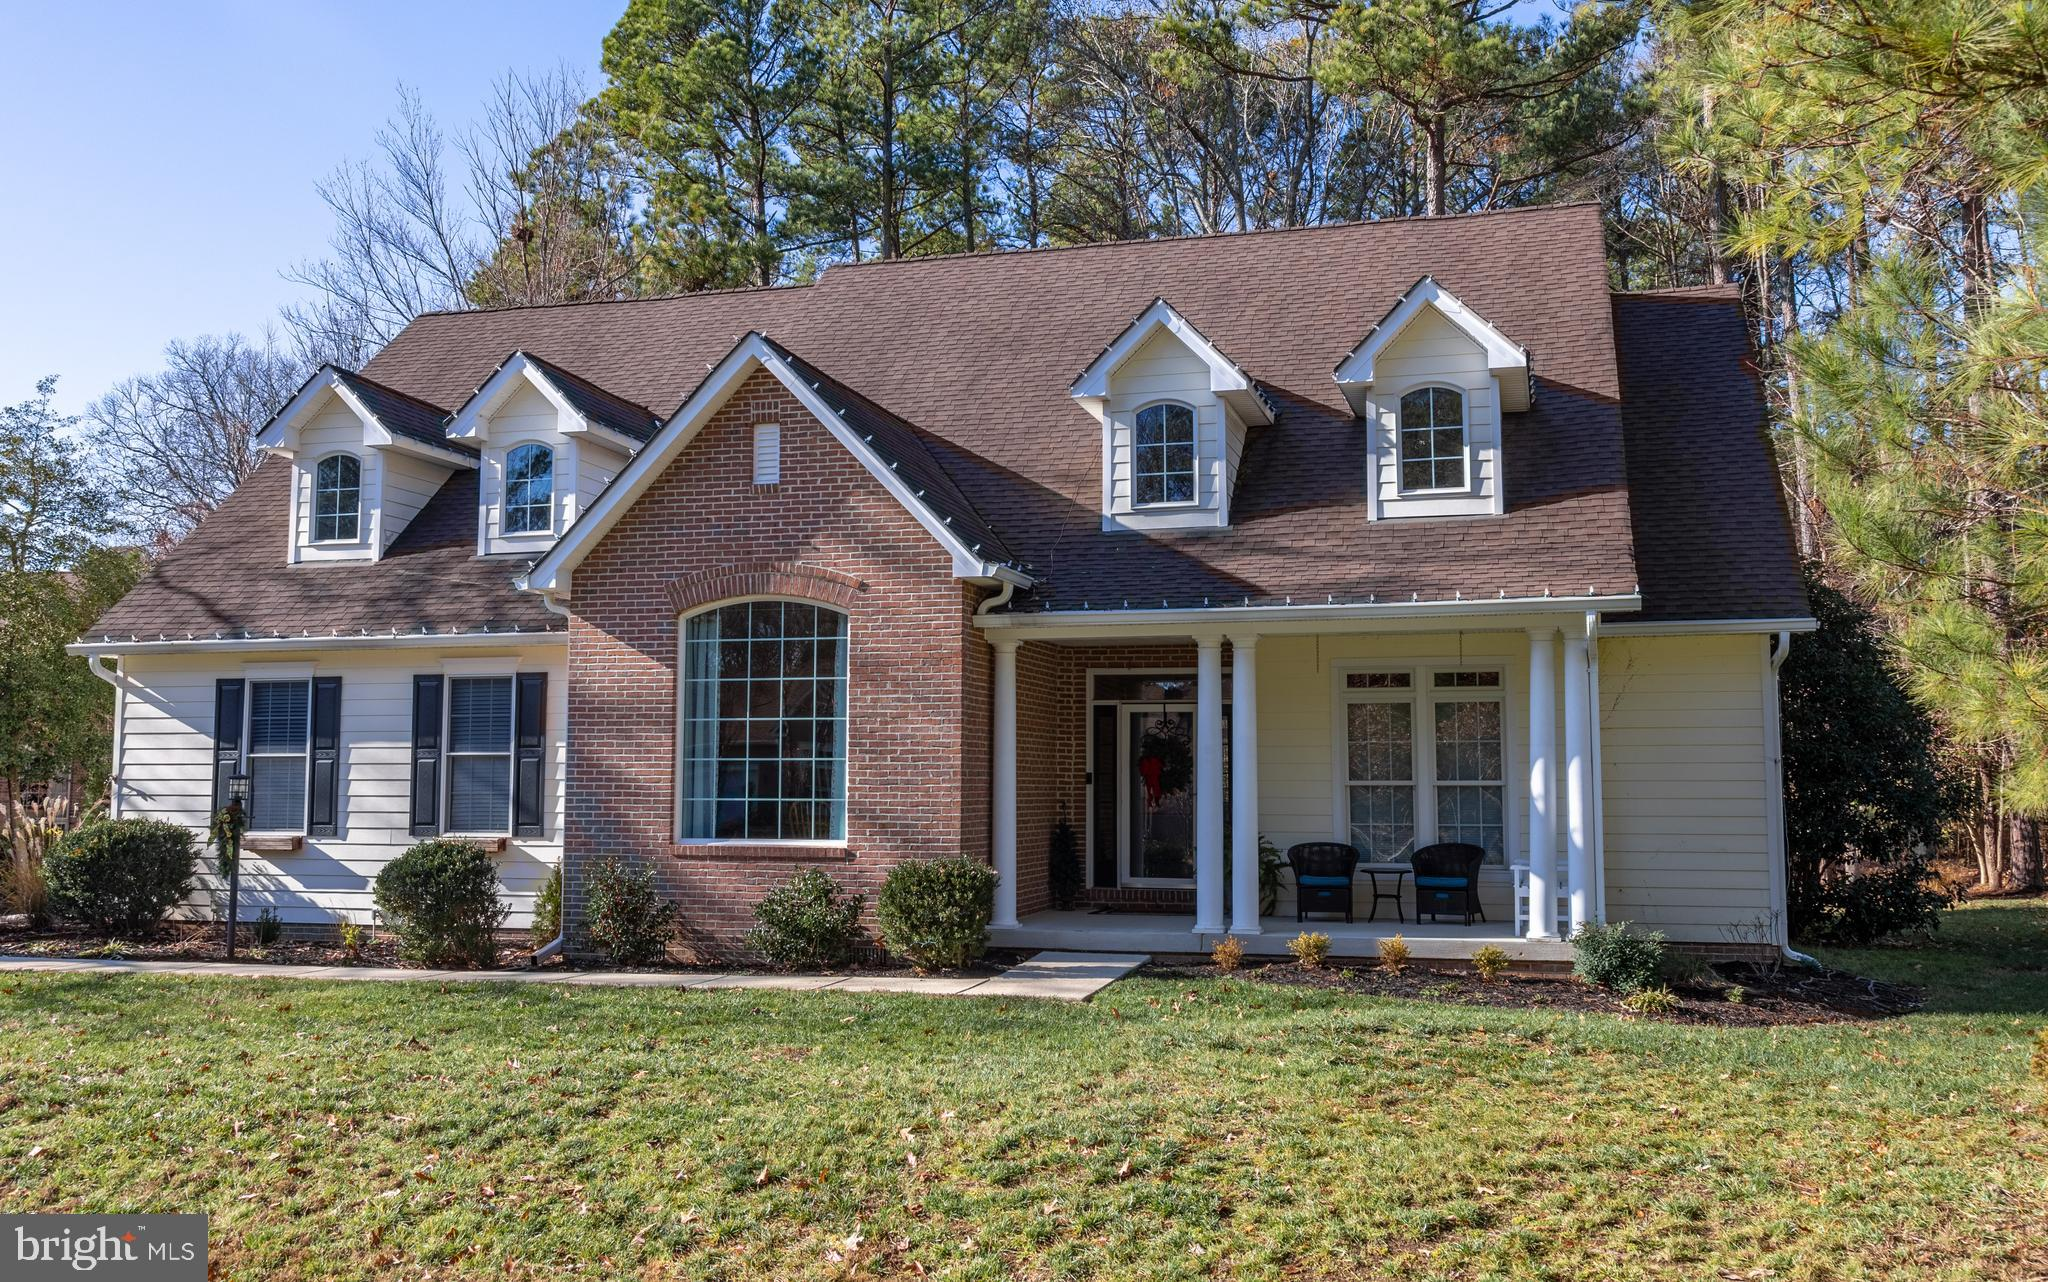 14855 KING CHARLES DRIVE, SWAN POINT, MD 20645